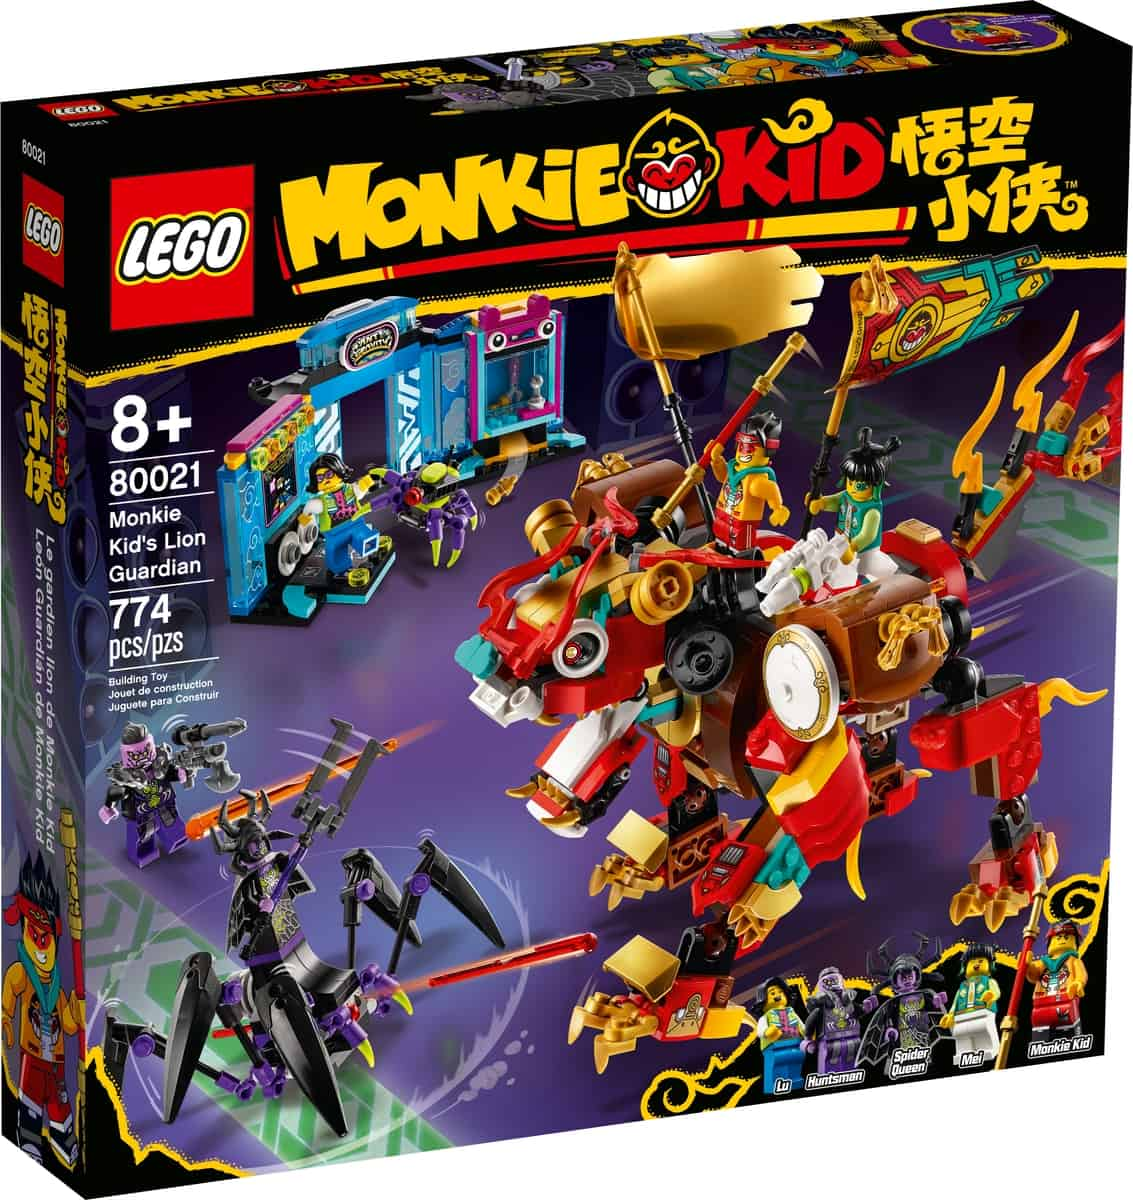 lego 80021 il leone guardiano di monkie kid